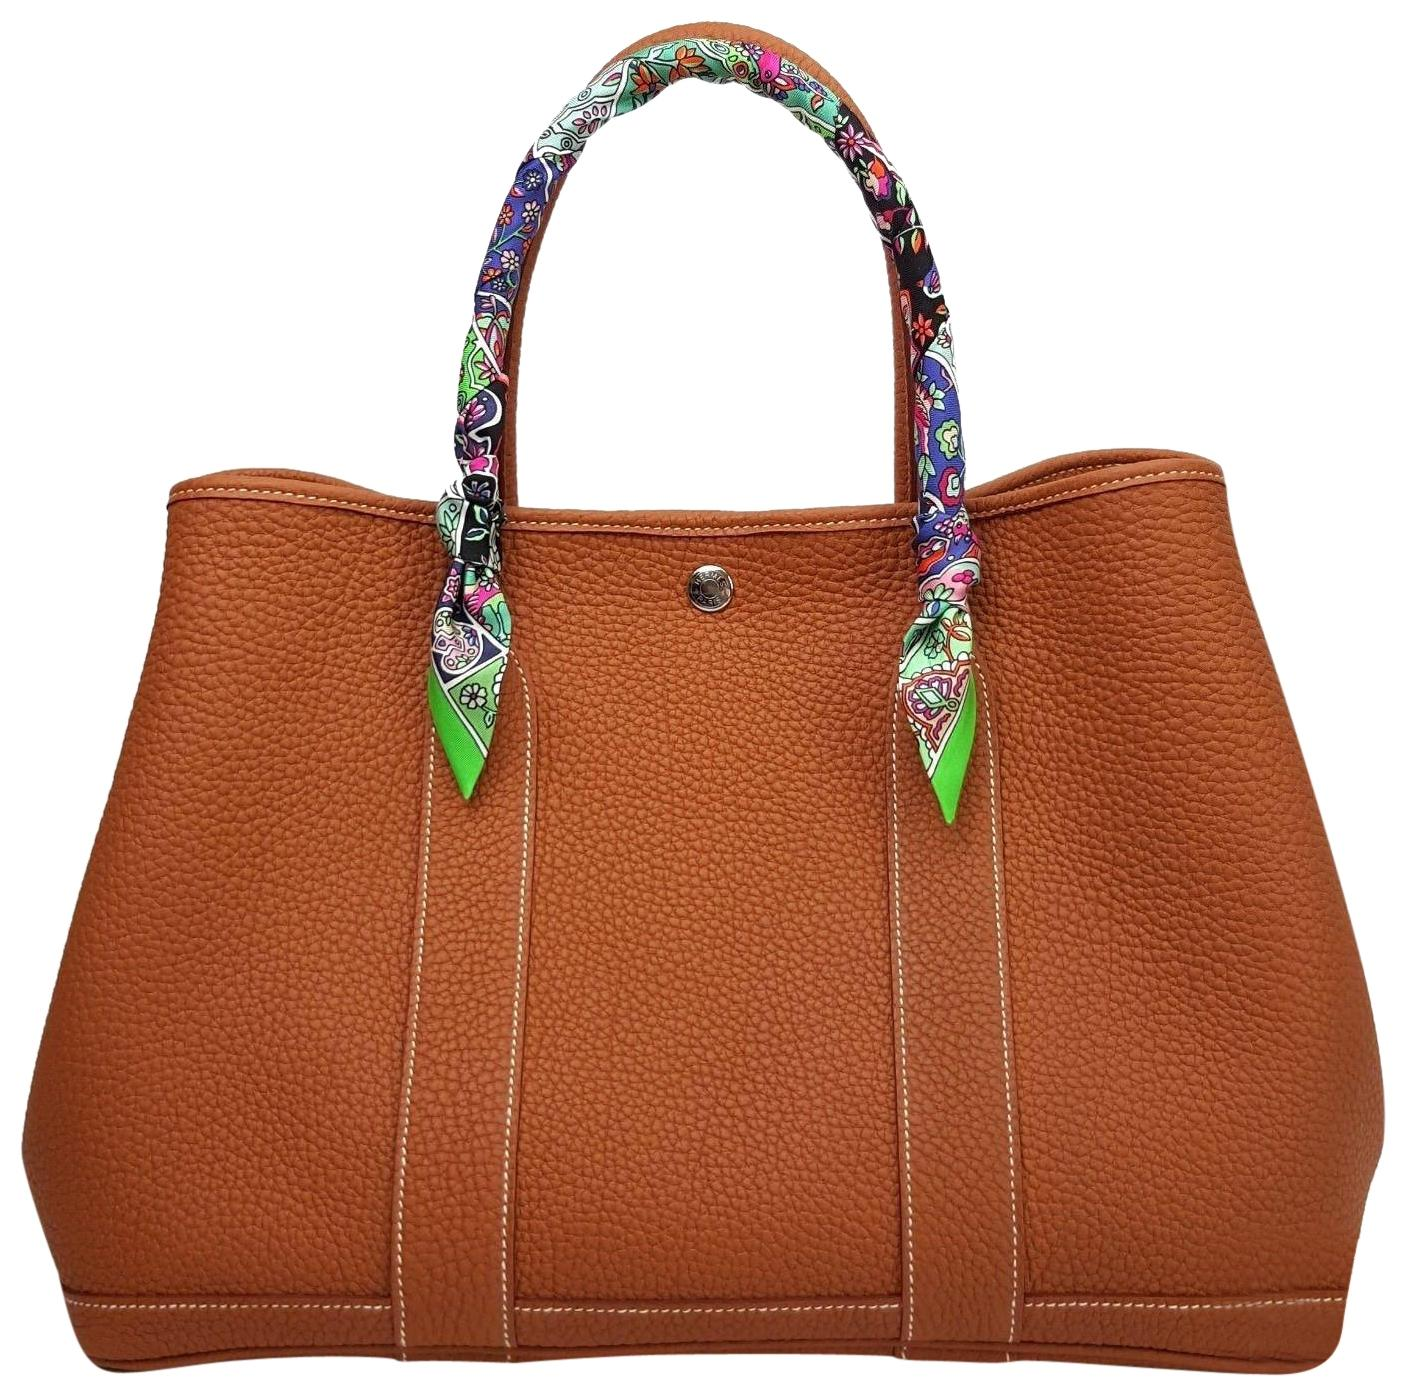 garden party hermes. Hermès Garden Party 36 Leather Tote In Gold Hermes L